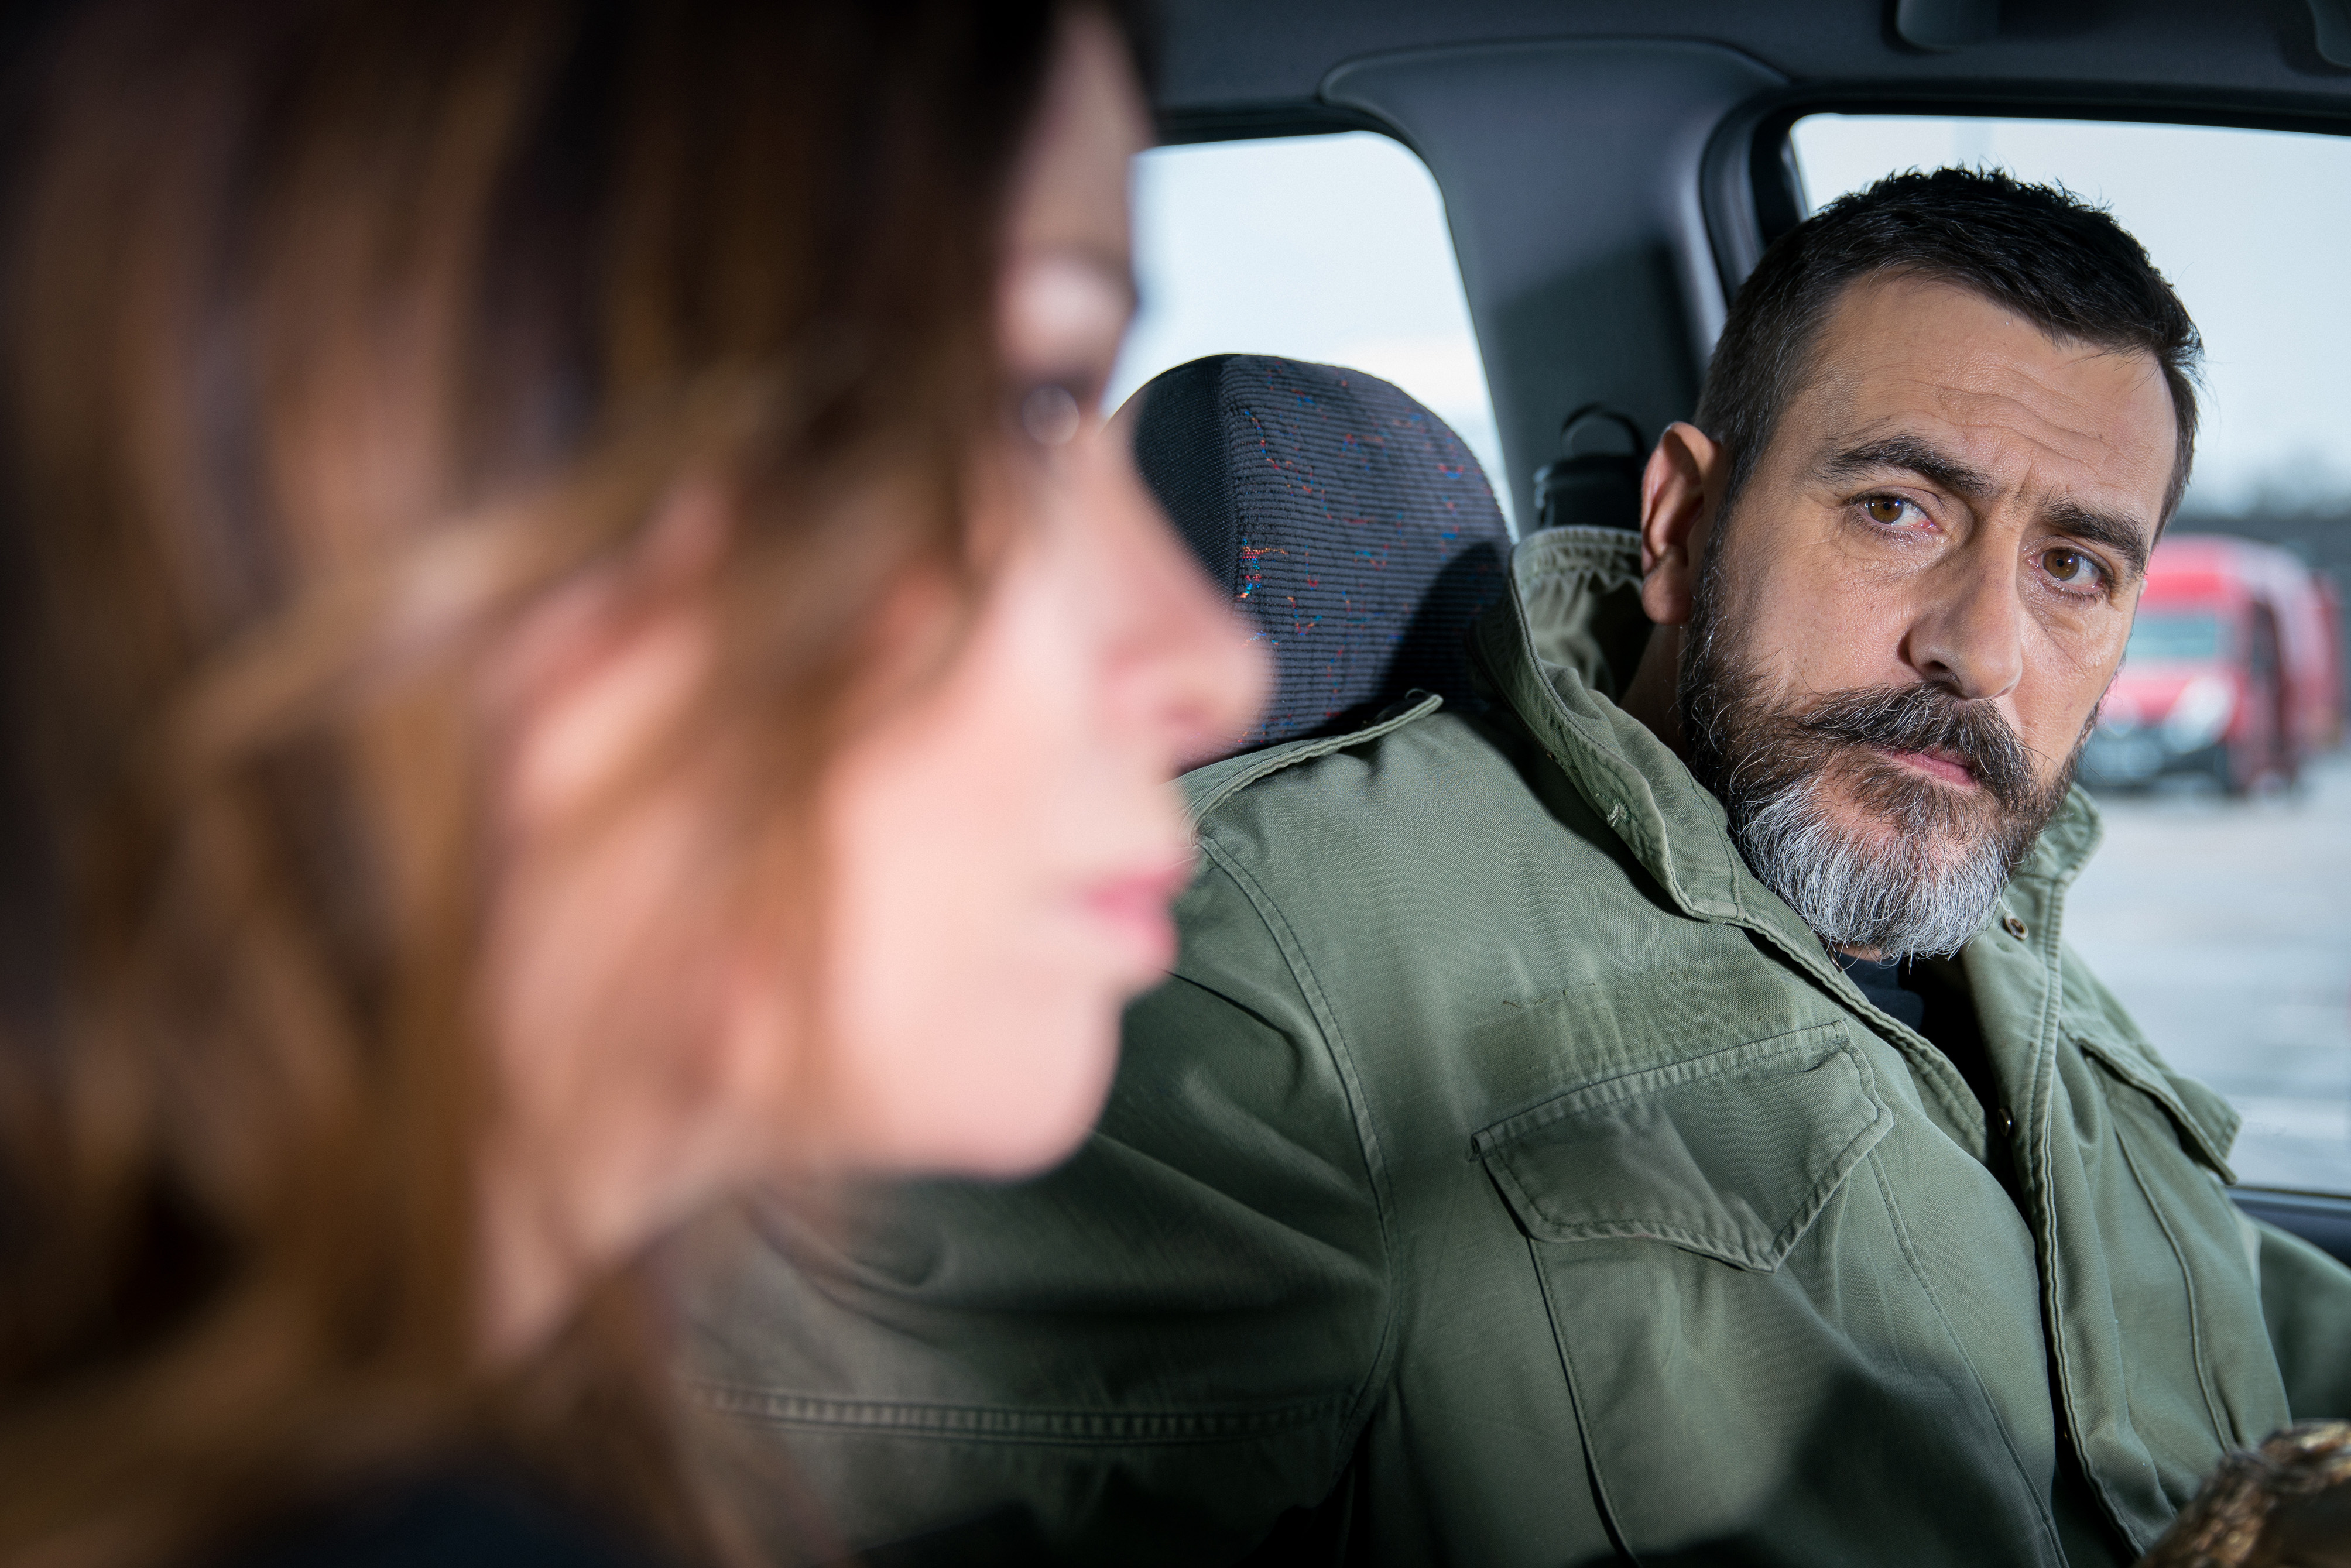 Coronation Street spoilers: Peter Barlow turns violent as he makes a discovery about missing Carla Connor